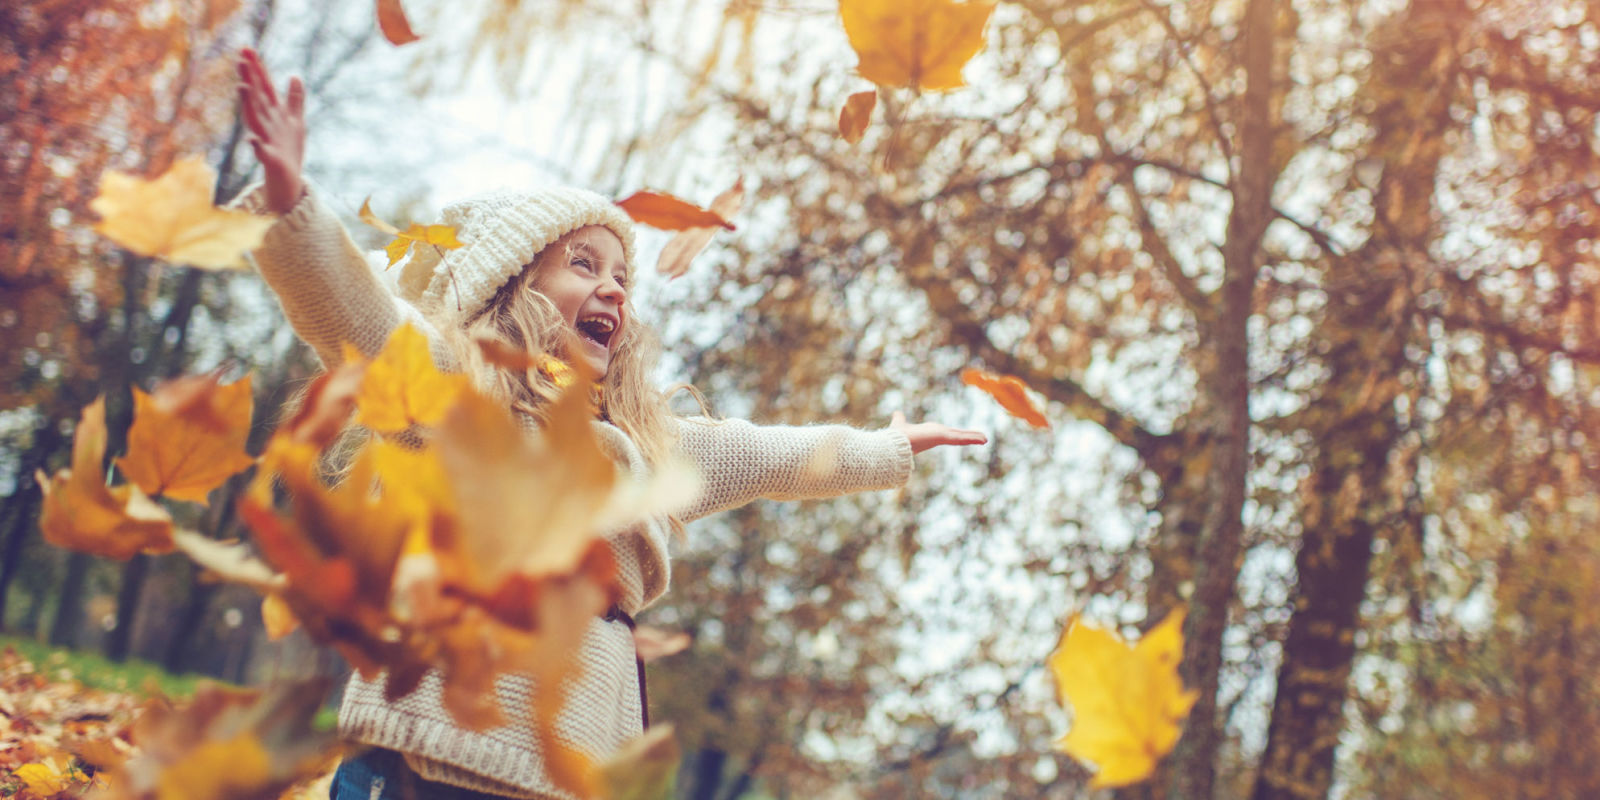 Fall 2017 weather predictions october weather predictions for Where is the horseshoe in country living october 2017